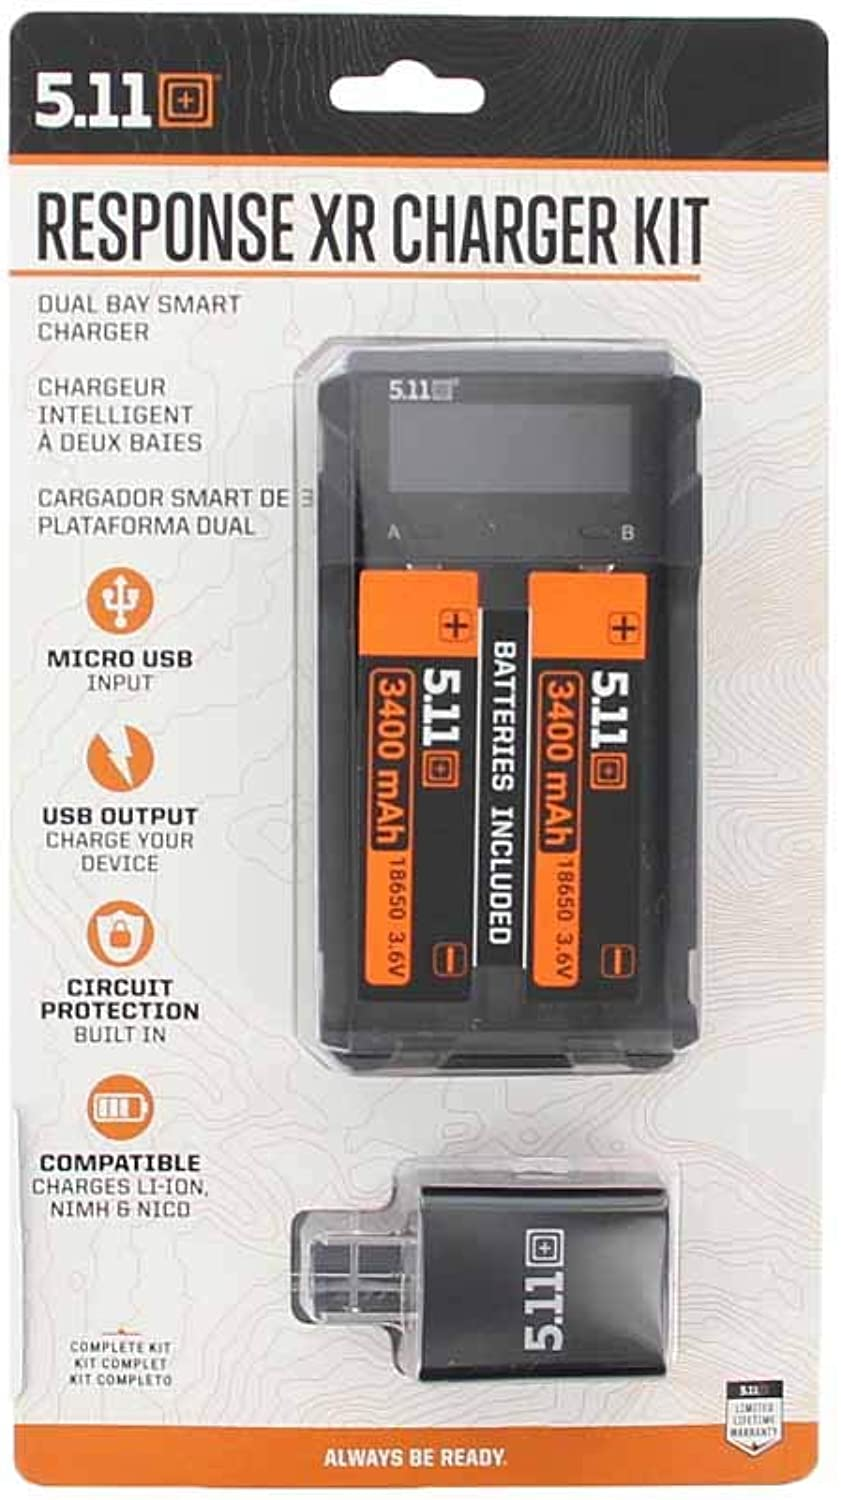 5.11 Response XR Charger Kit Flashlight Rechargeable Power, Style 53403